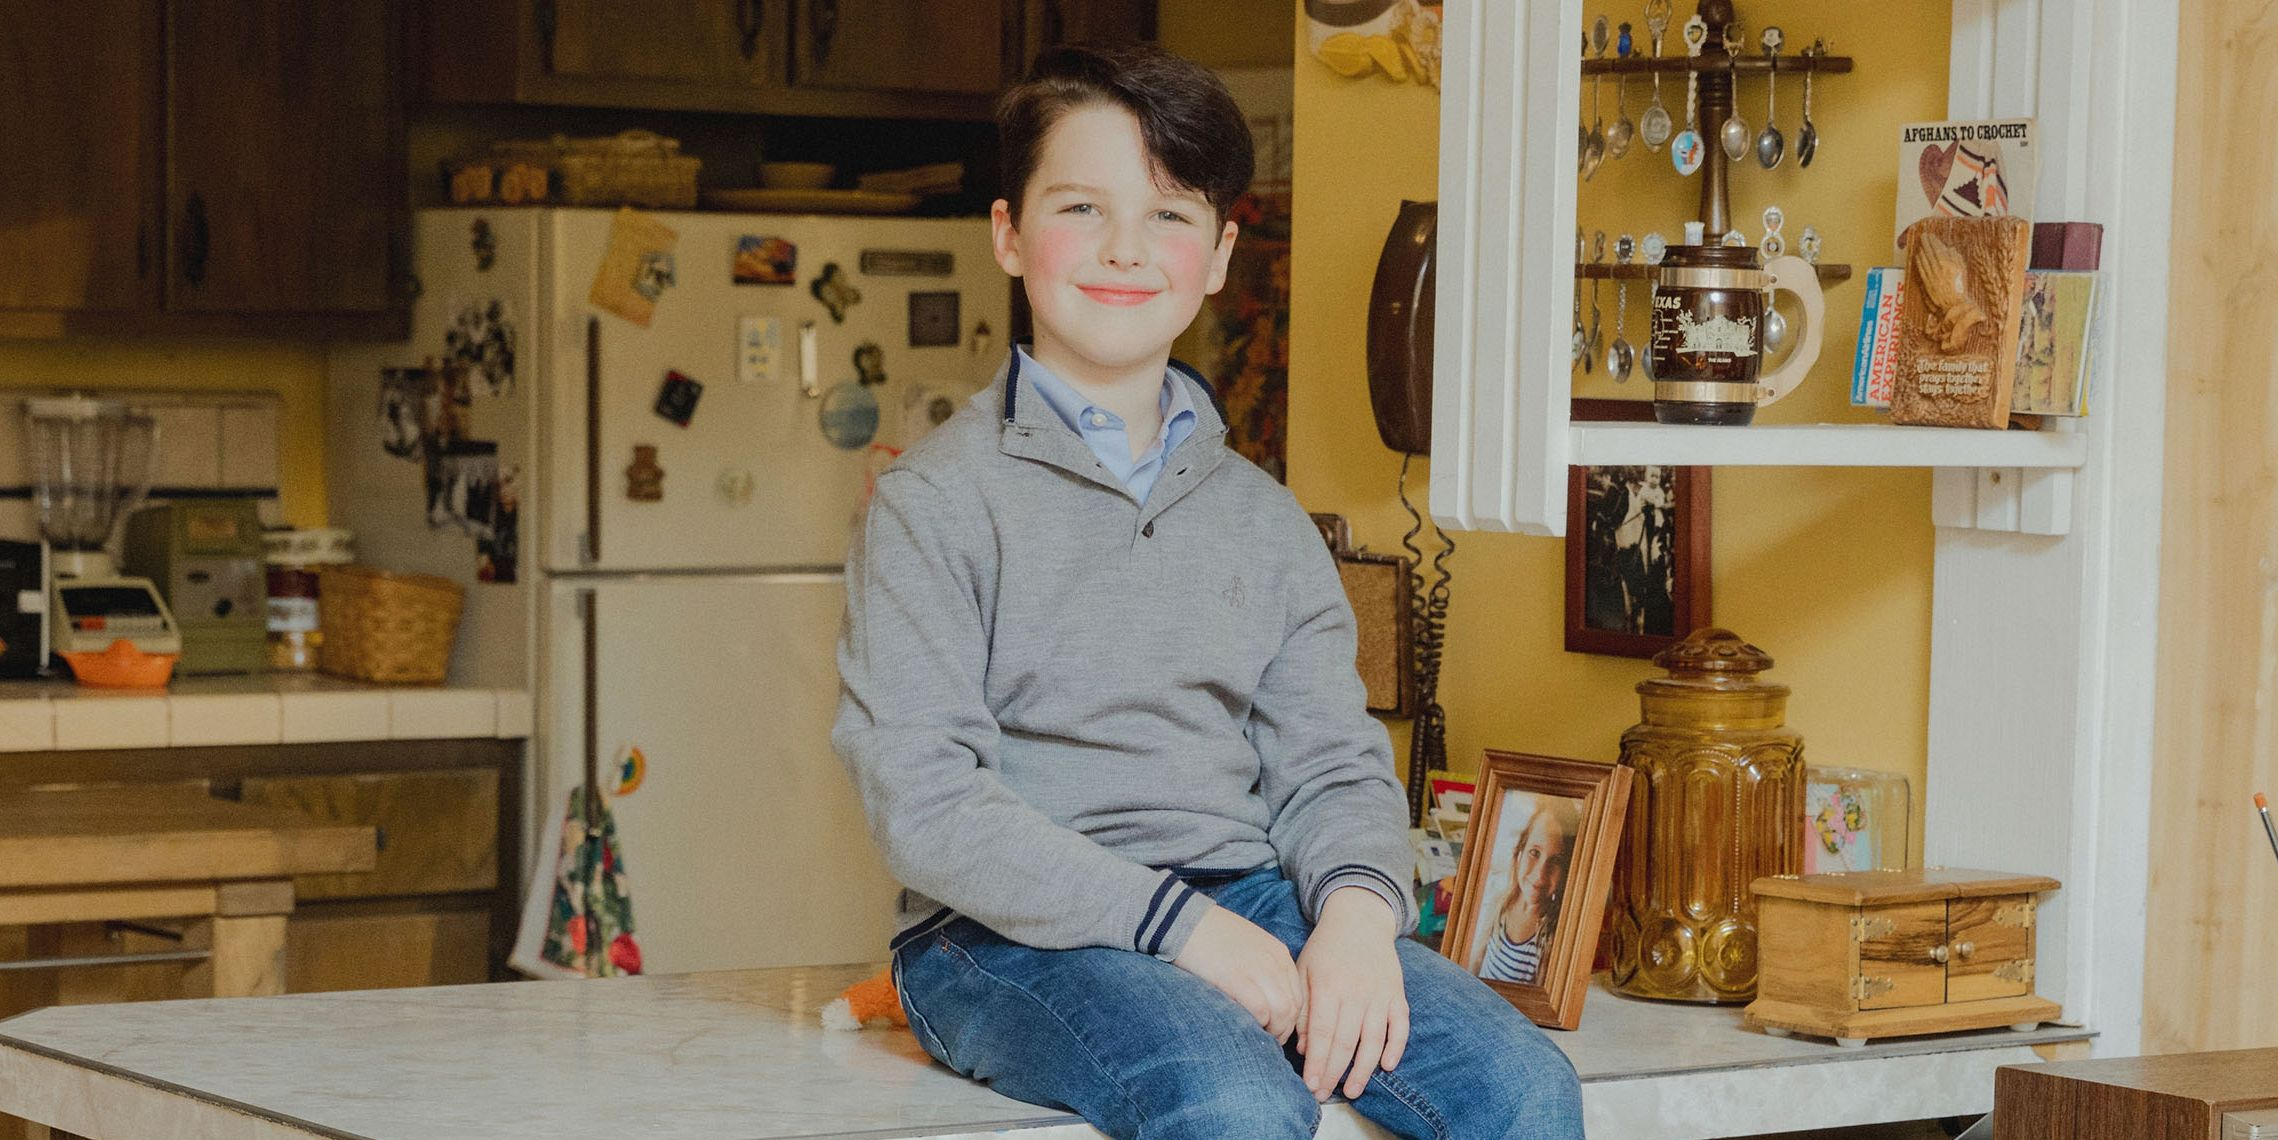 """The """"Young Sheldon"""" star has already enjoyed a career filled with more prestige than most adult actors might dream of having in their entire lives."""